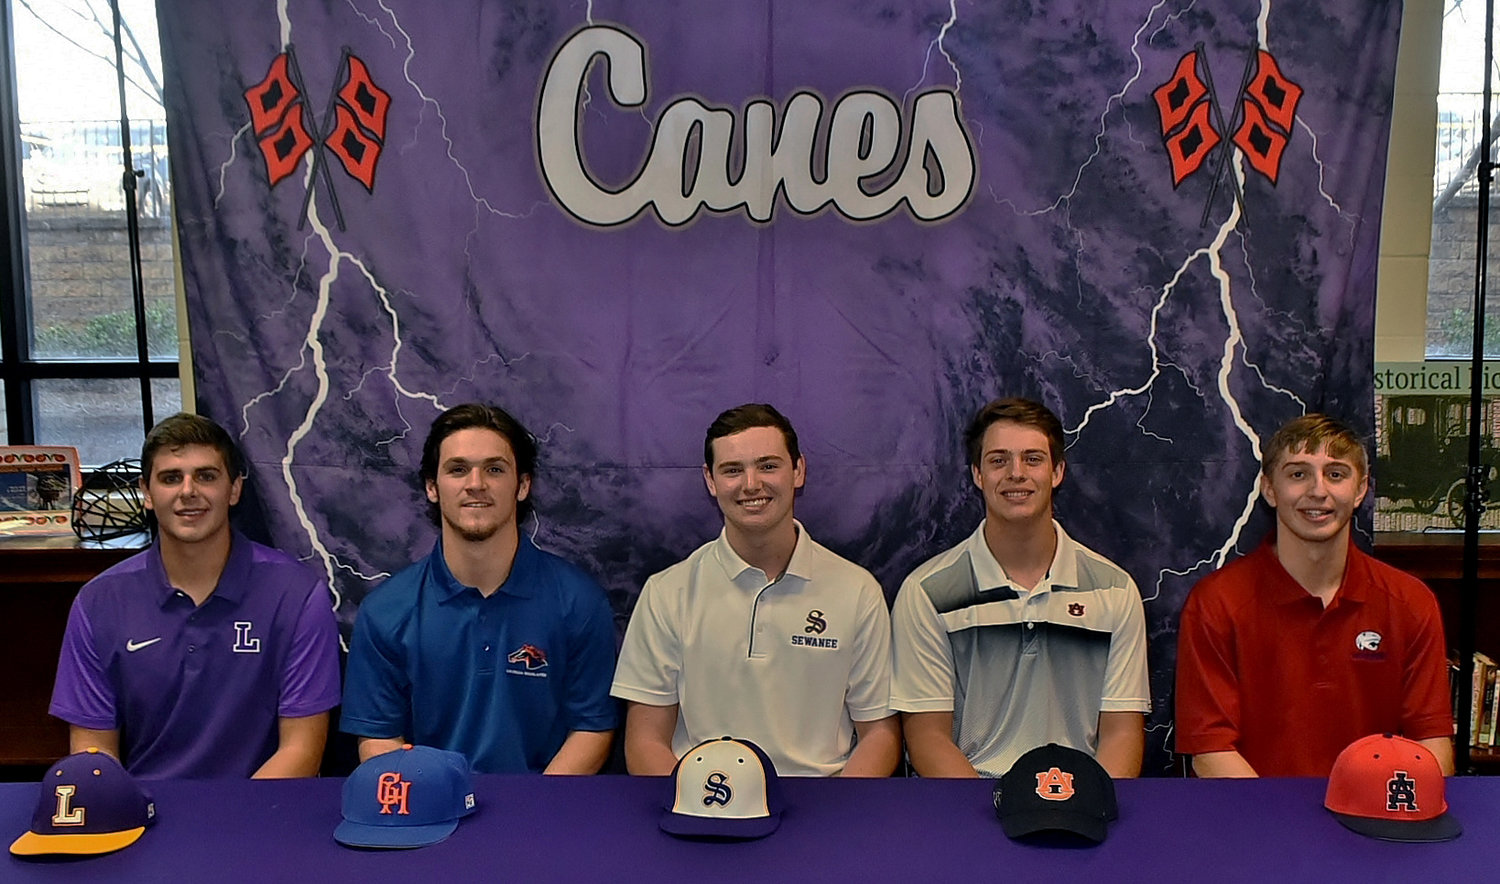 5 Cartersville baseball players sign to play collegiately